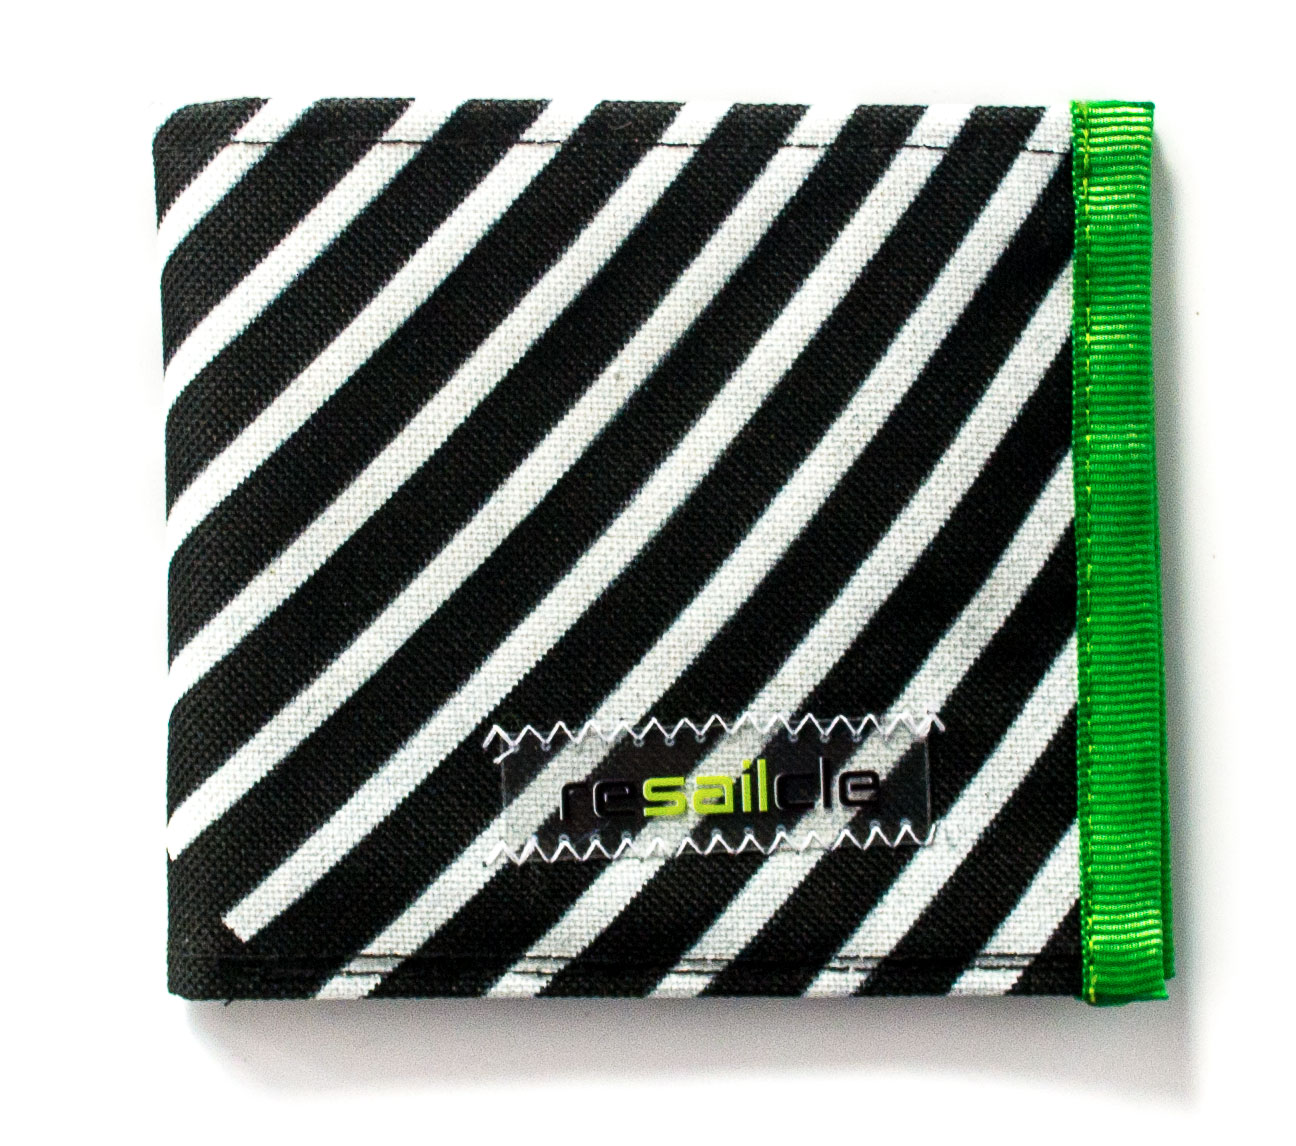 ReSailCle - RRD black and green wallet